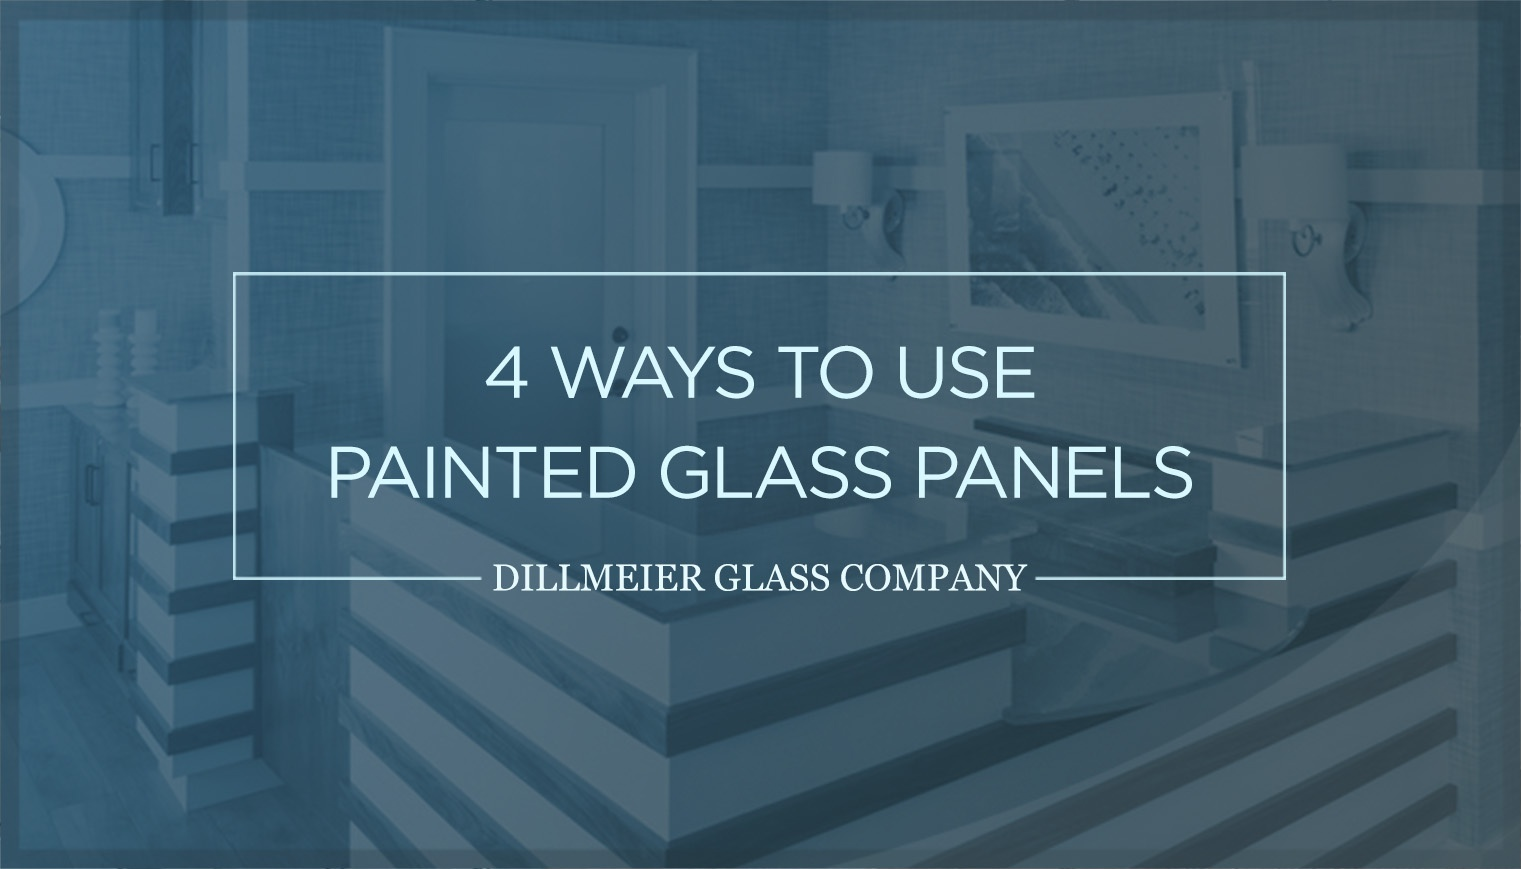 4 Ways to Use Painted Glass Panels in Commercial Interiors